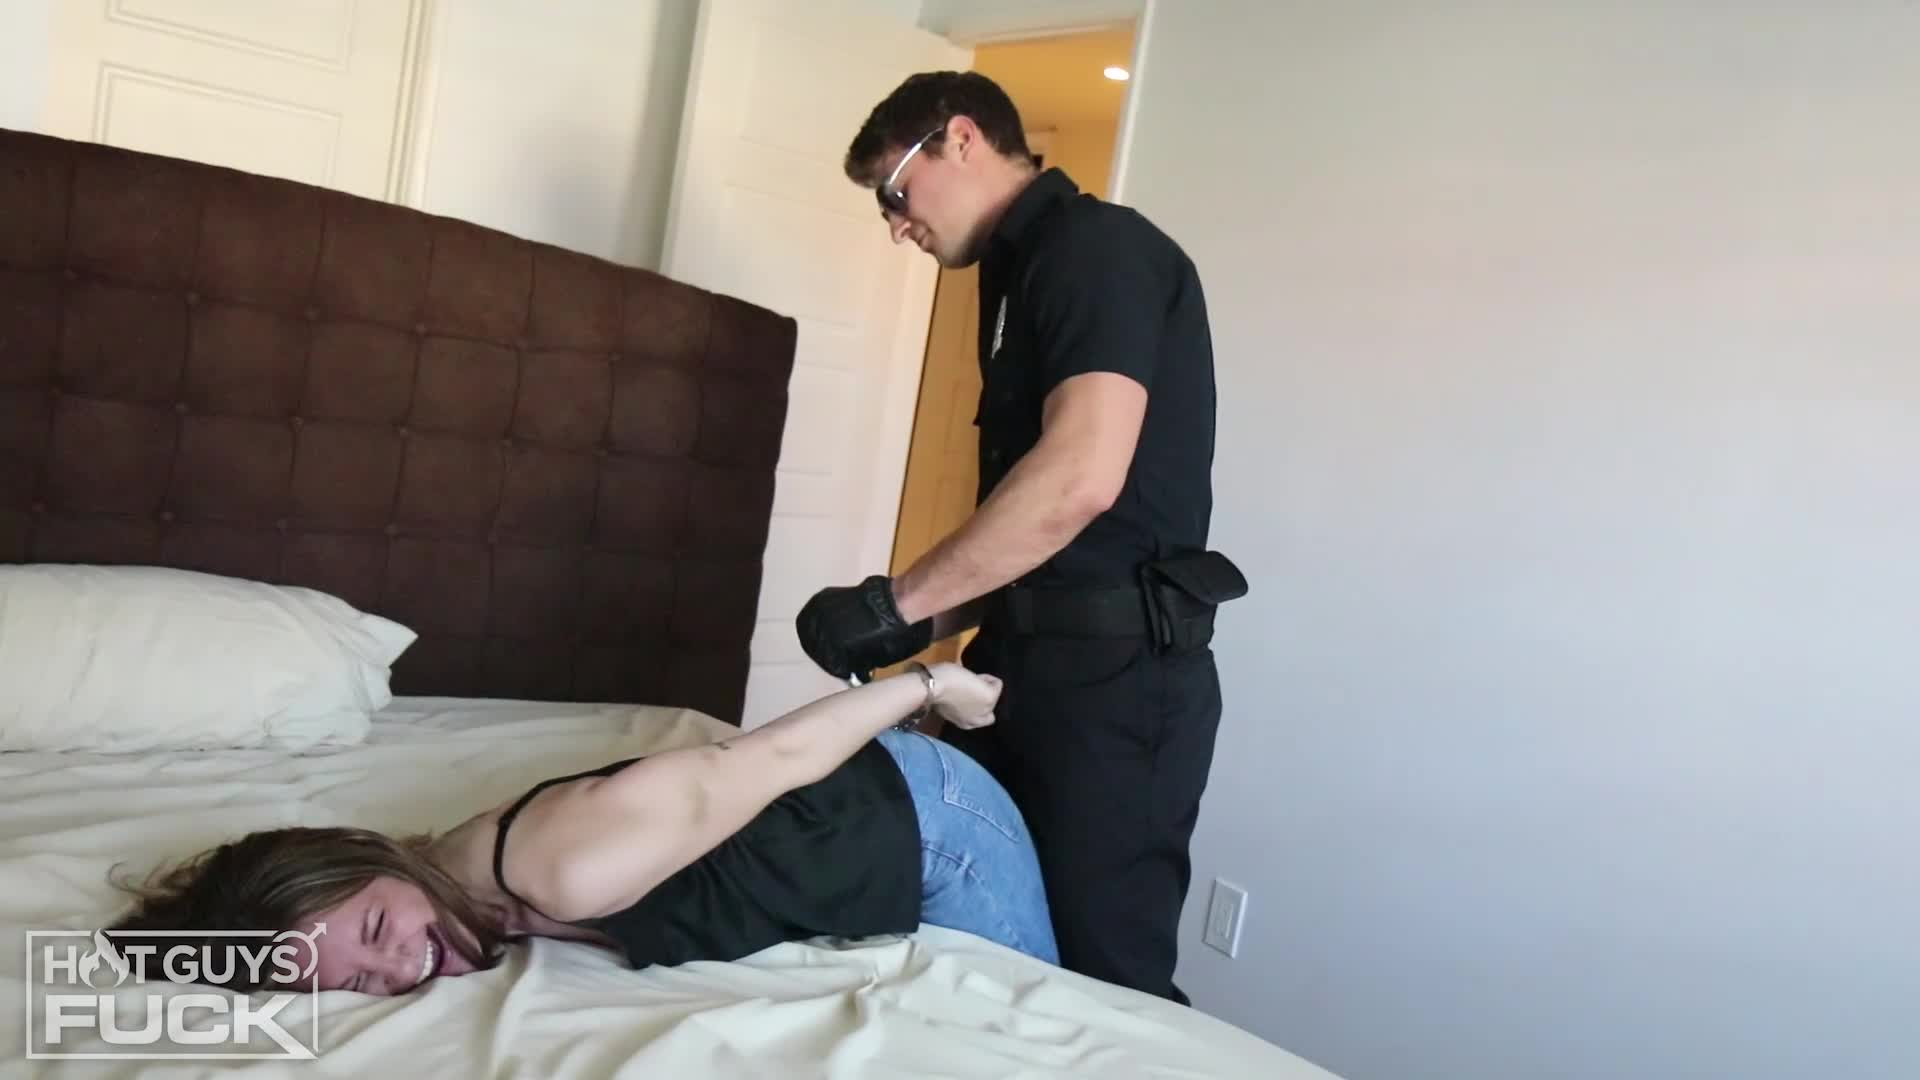 Guy Fucks The First Time